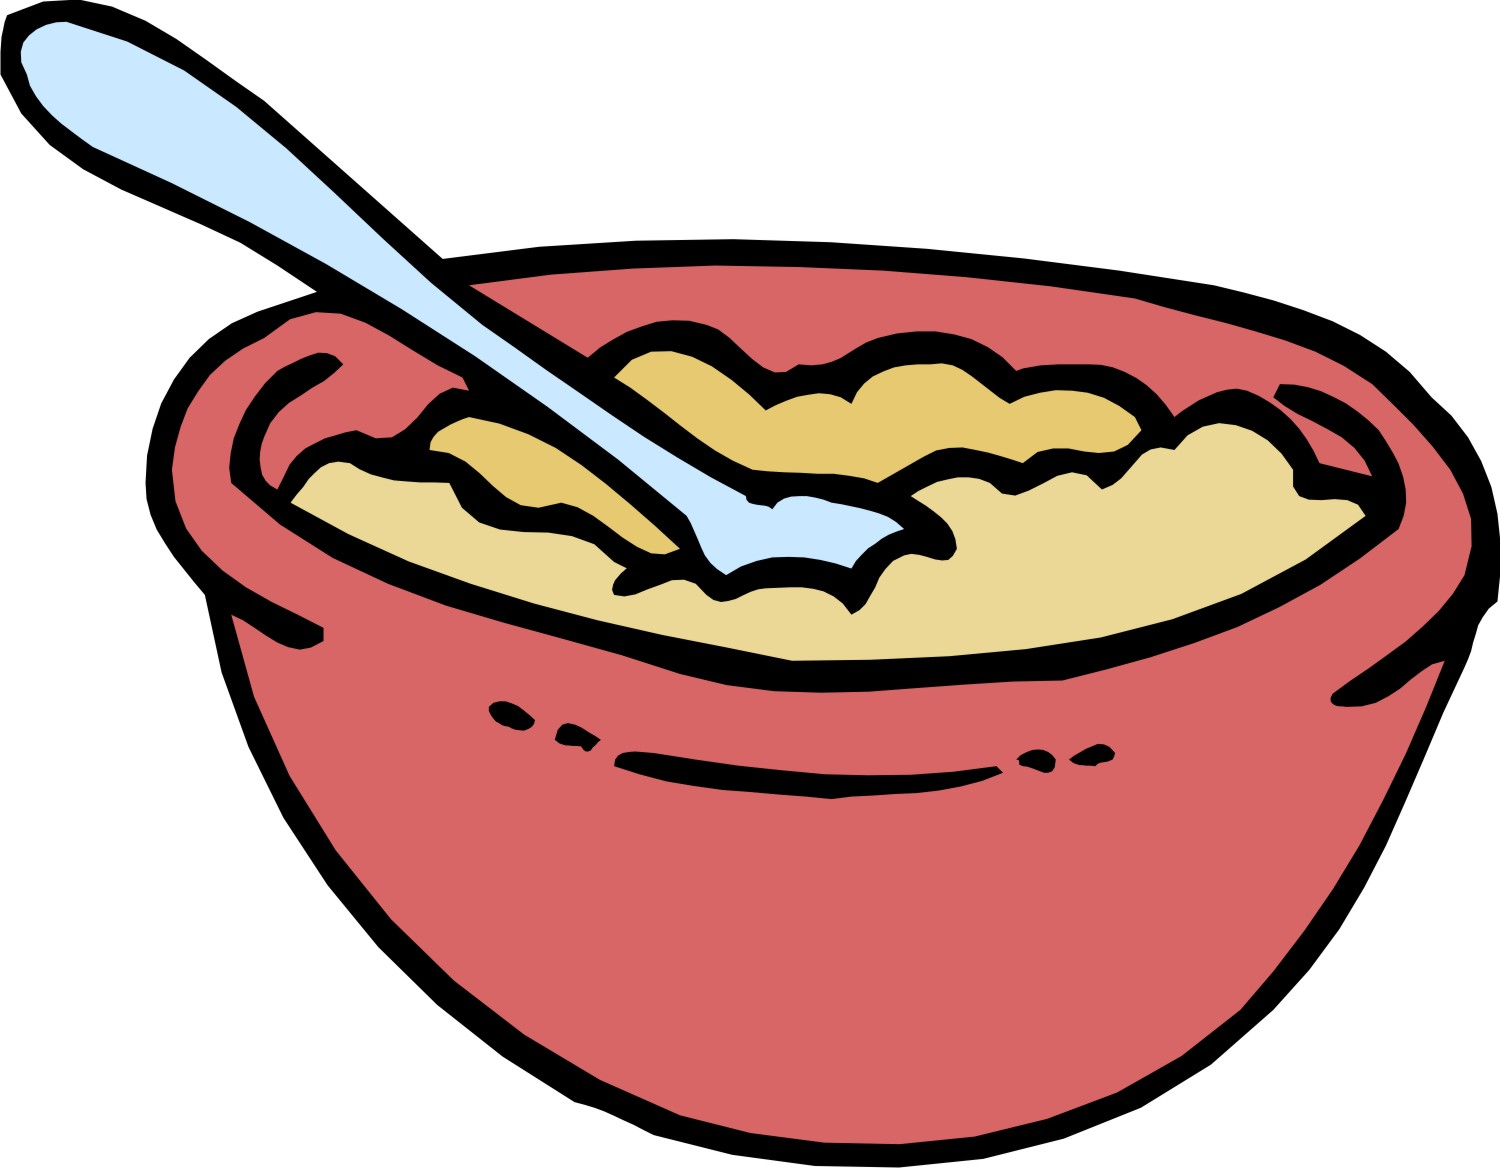 cooking bowl clipart - photo #14